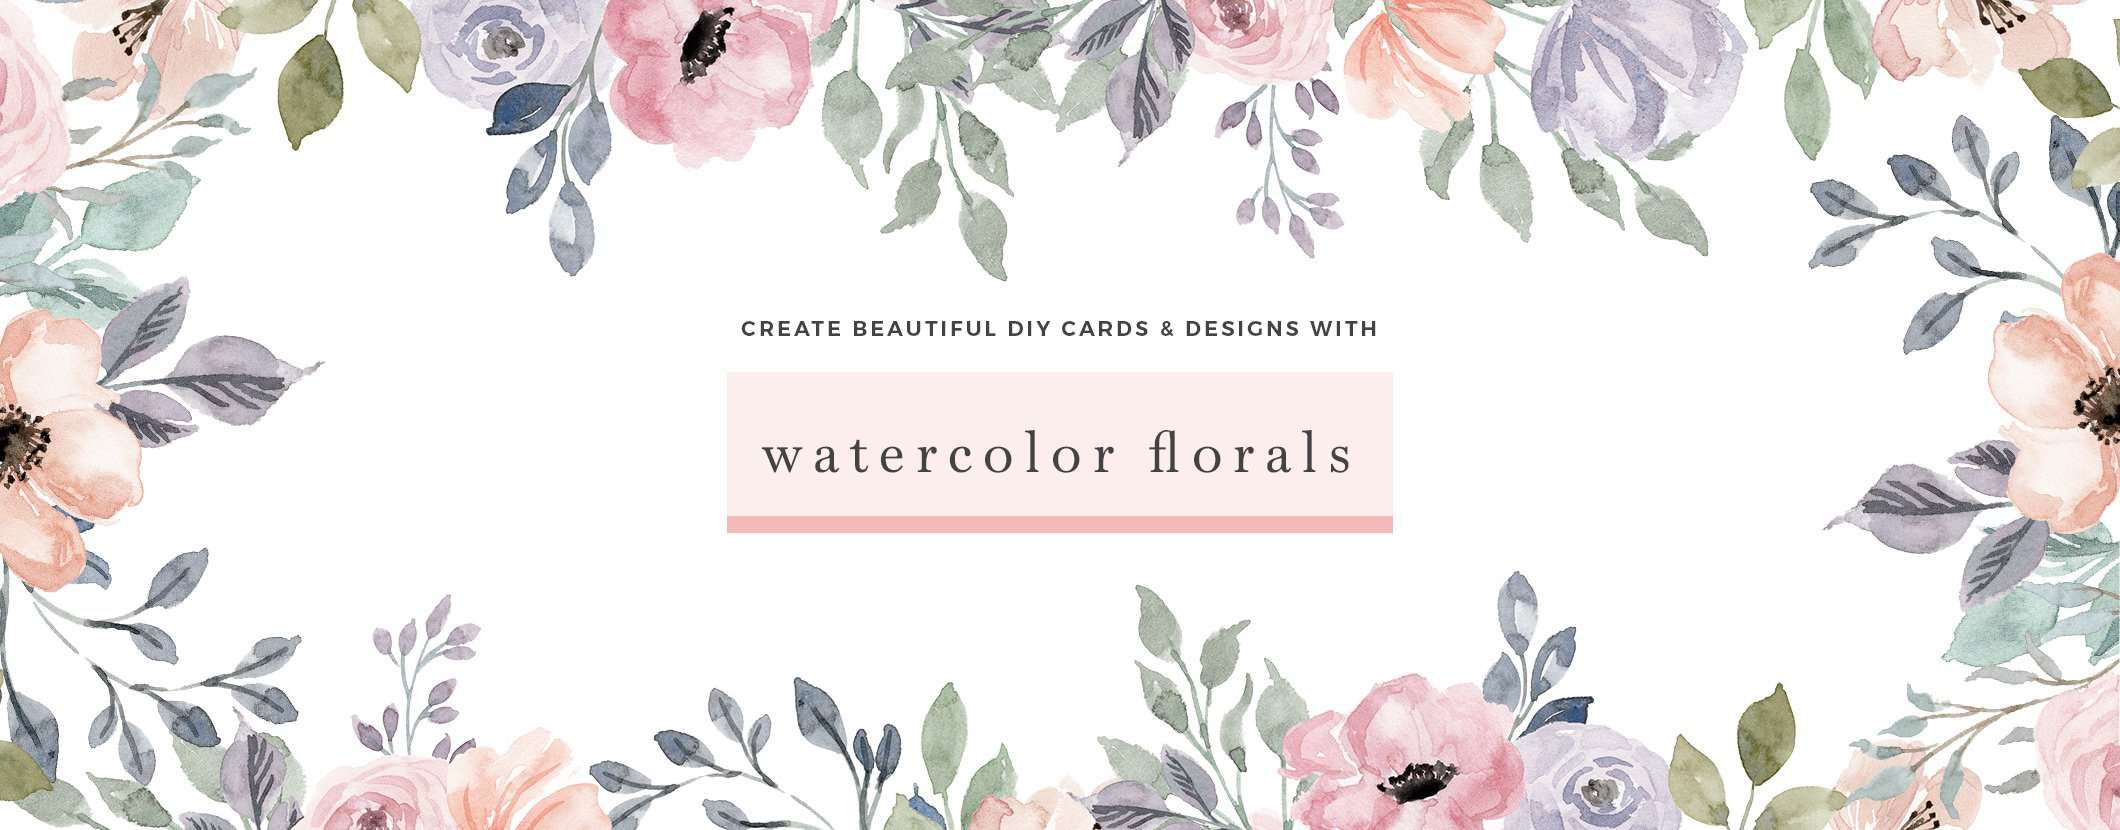 Watercolor Flowers Clipart for wedding invitations logos branding birthday party invites DIY stationery